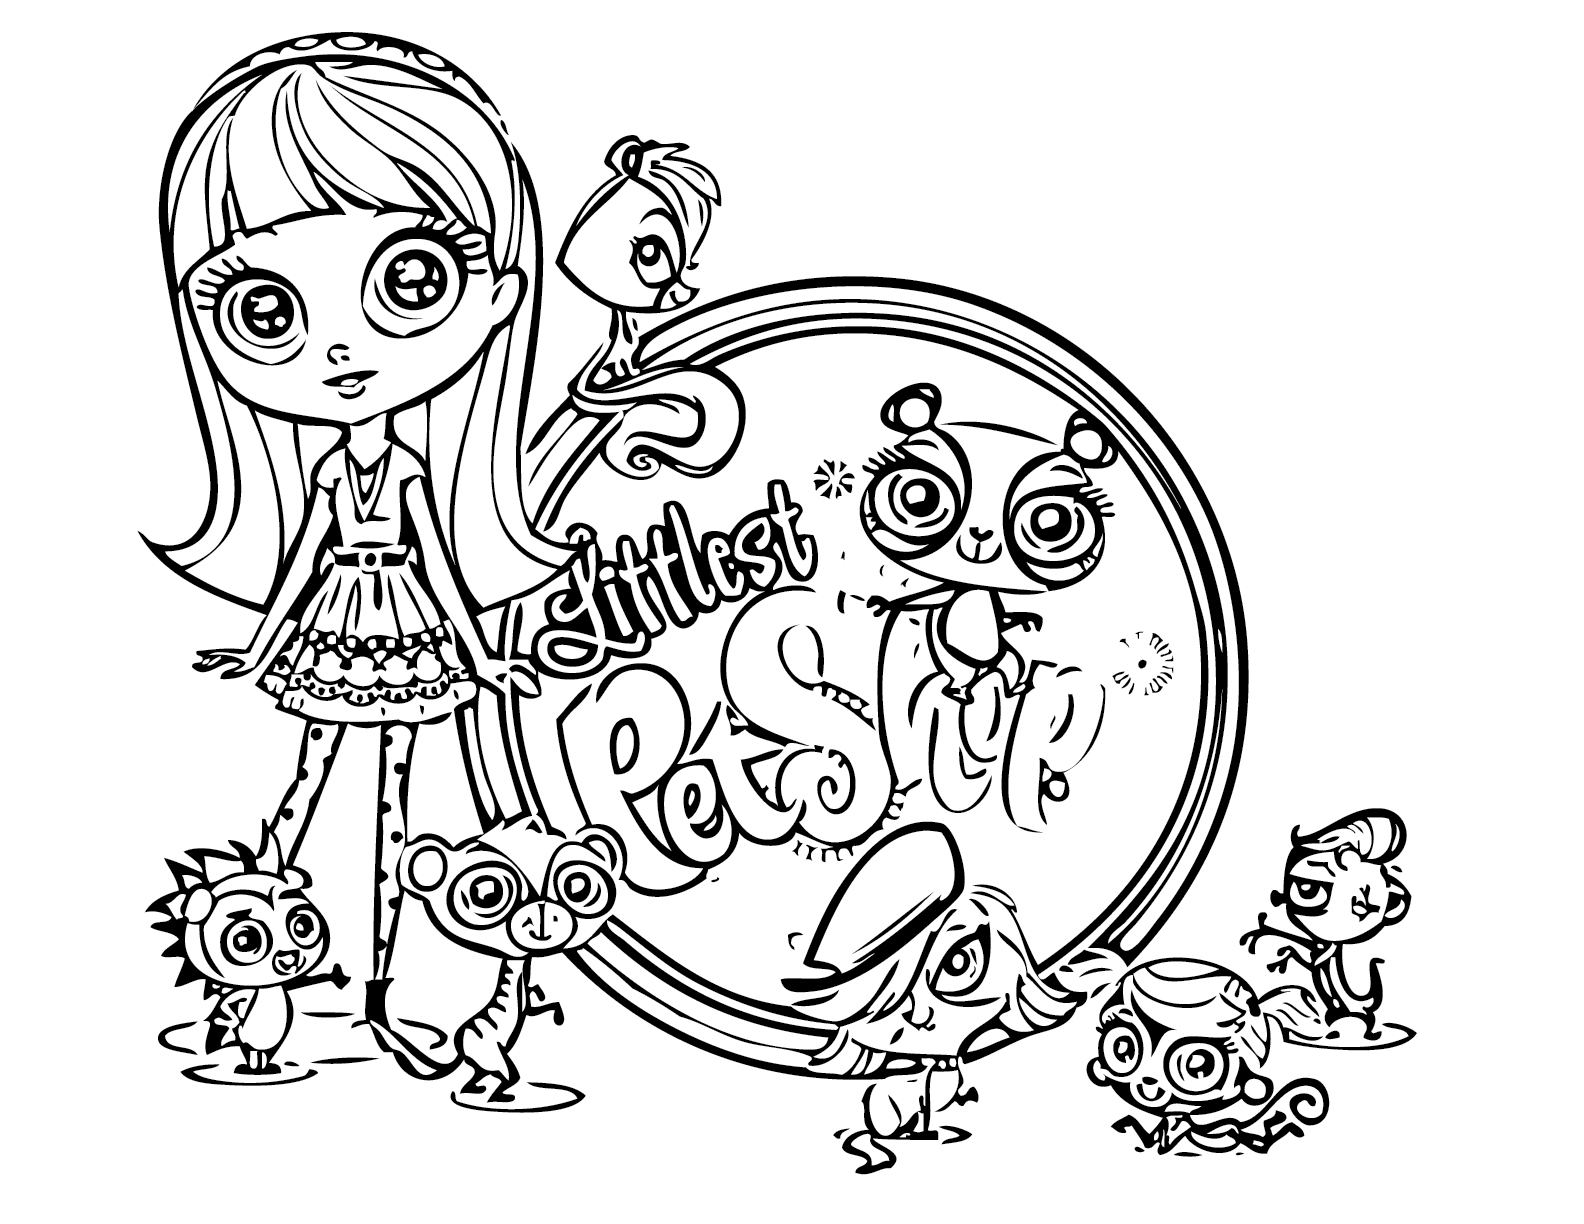 Littlest Pet Shop Coloring Pages Best Coloring Pages For Kids